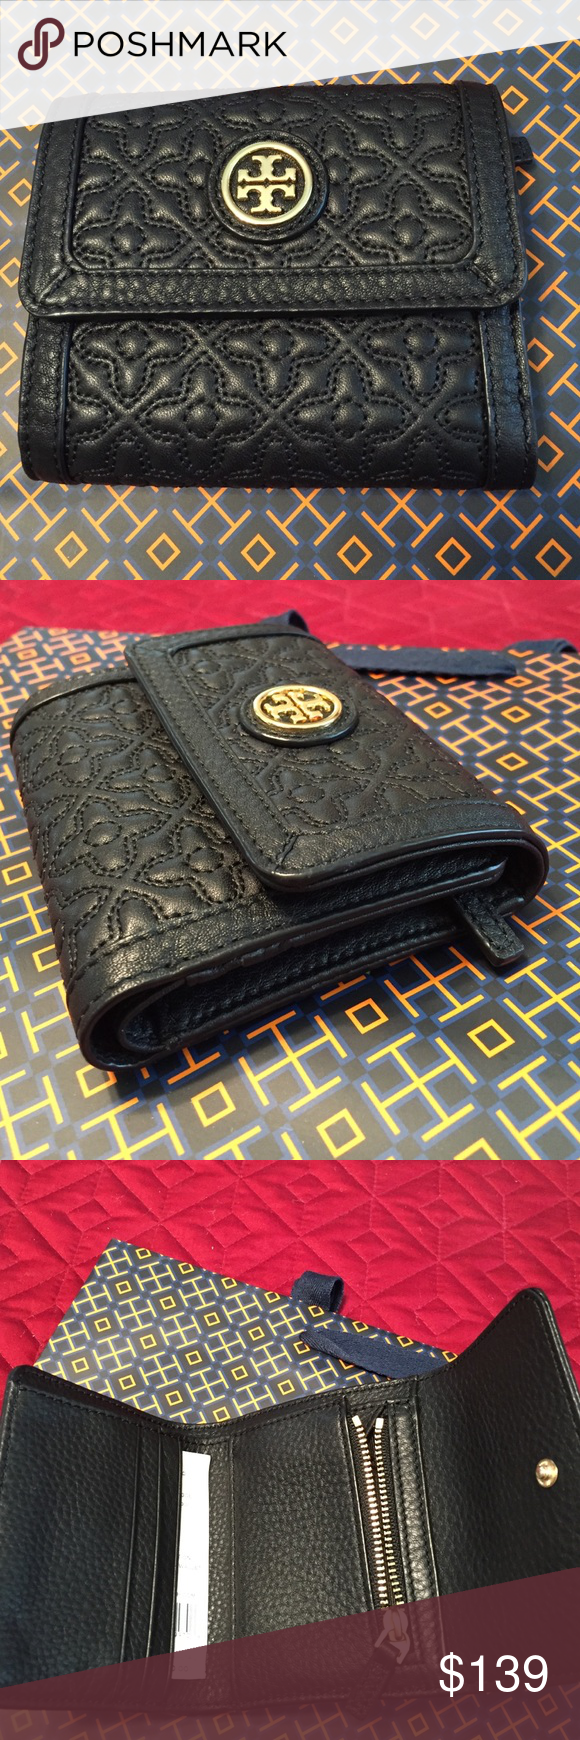 "🆕Tory Burch BLACK Leather Bryant mini wallet. NWT Perfect when just a little wallet will do... Nice size to use in the mini bags but with plenty of compartments. Inside has 3 card slots, 1 zipper coin slot and side bill slot with signature logo jacquard lining. Gold front Double-T emblem with strong snap closure. New, never used, with tag. Approximate Measurements: 4.5"" L x 4.5"" H x 1"" D. Tory Burch Bags Wallets"